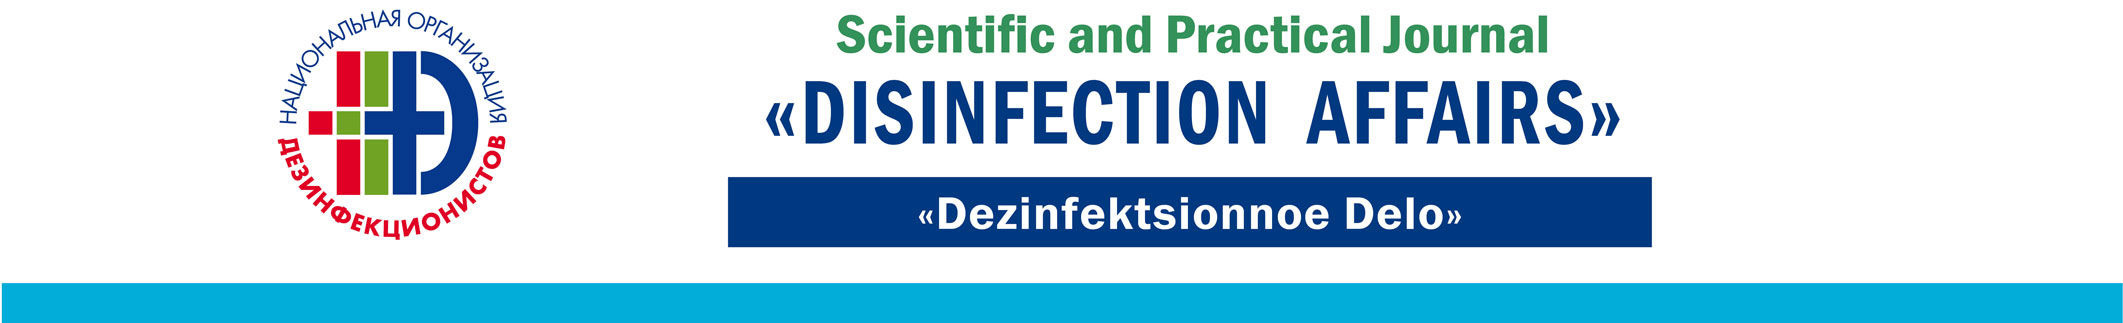 Disinfection Affairs